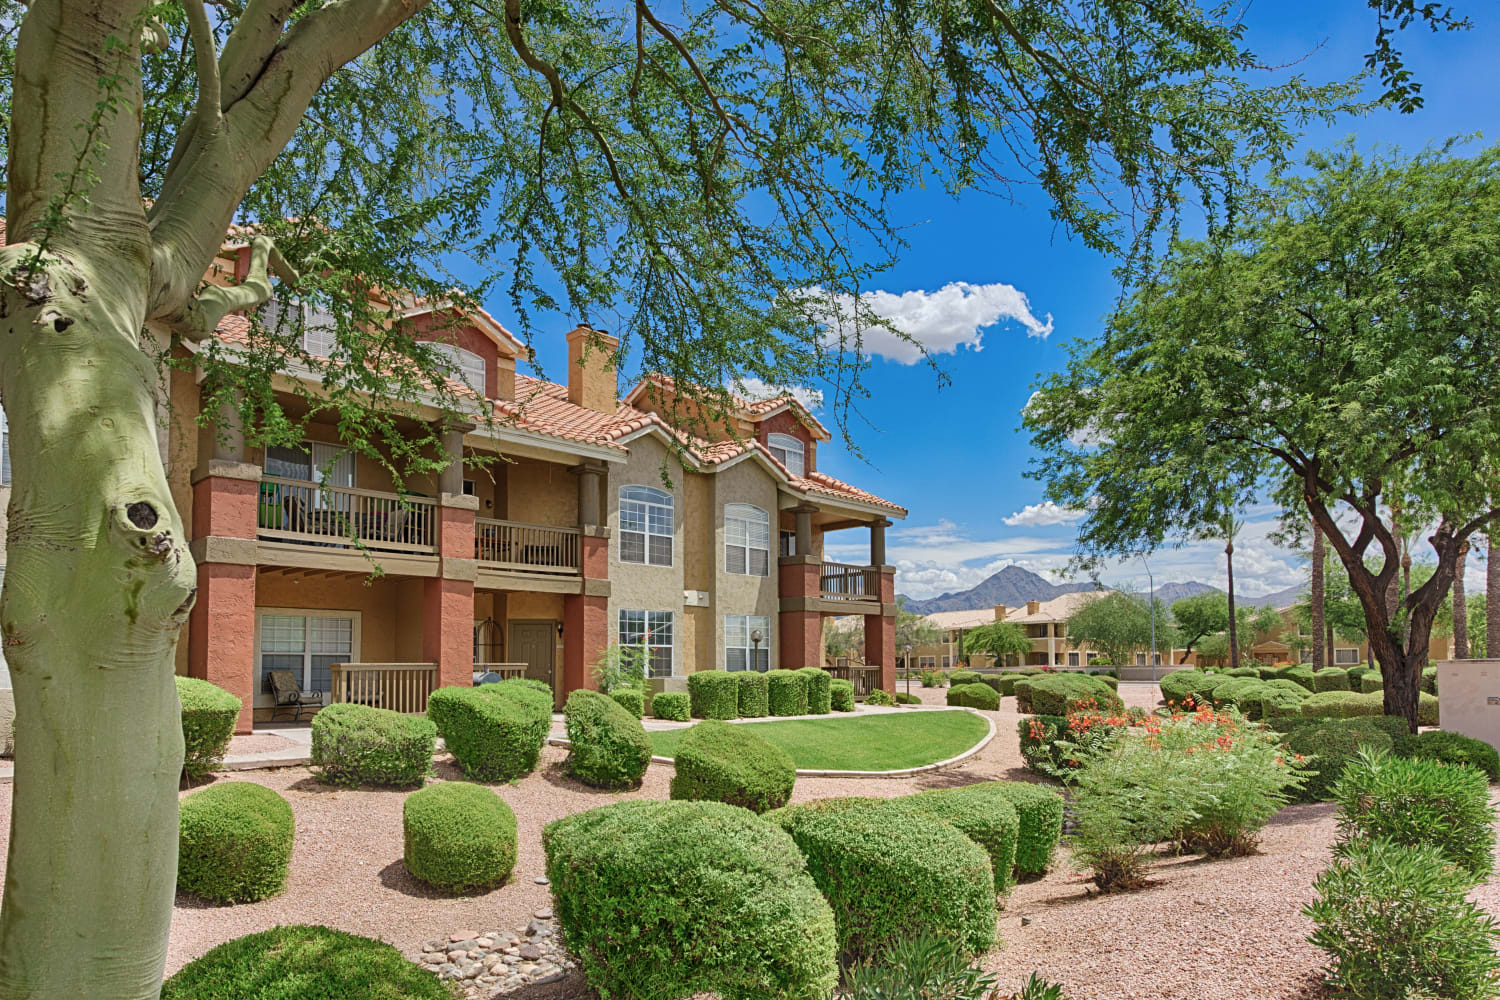 Manicured grounds at Sonoran Vista Apartments in Scottsdale, Arizona